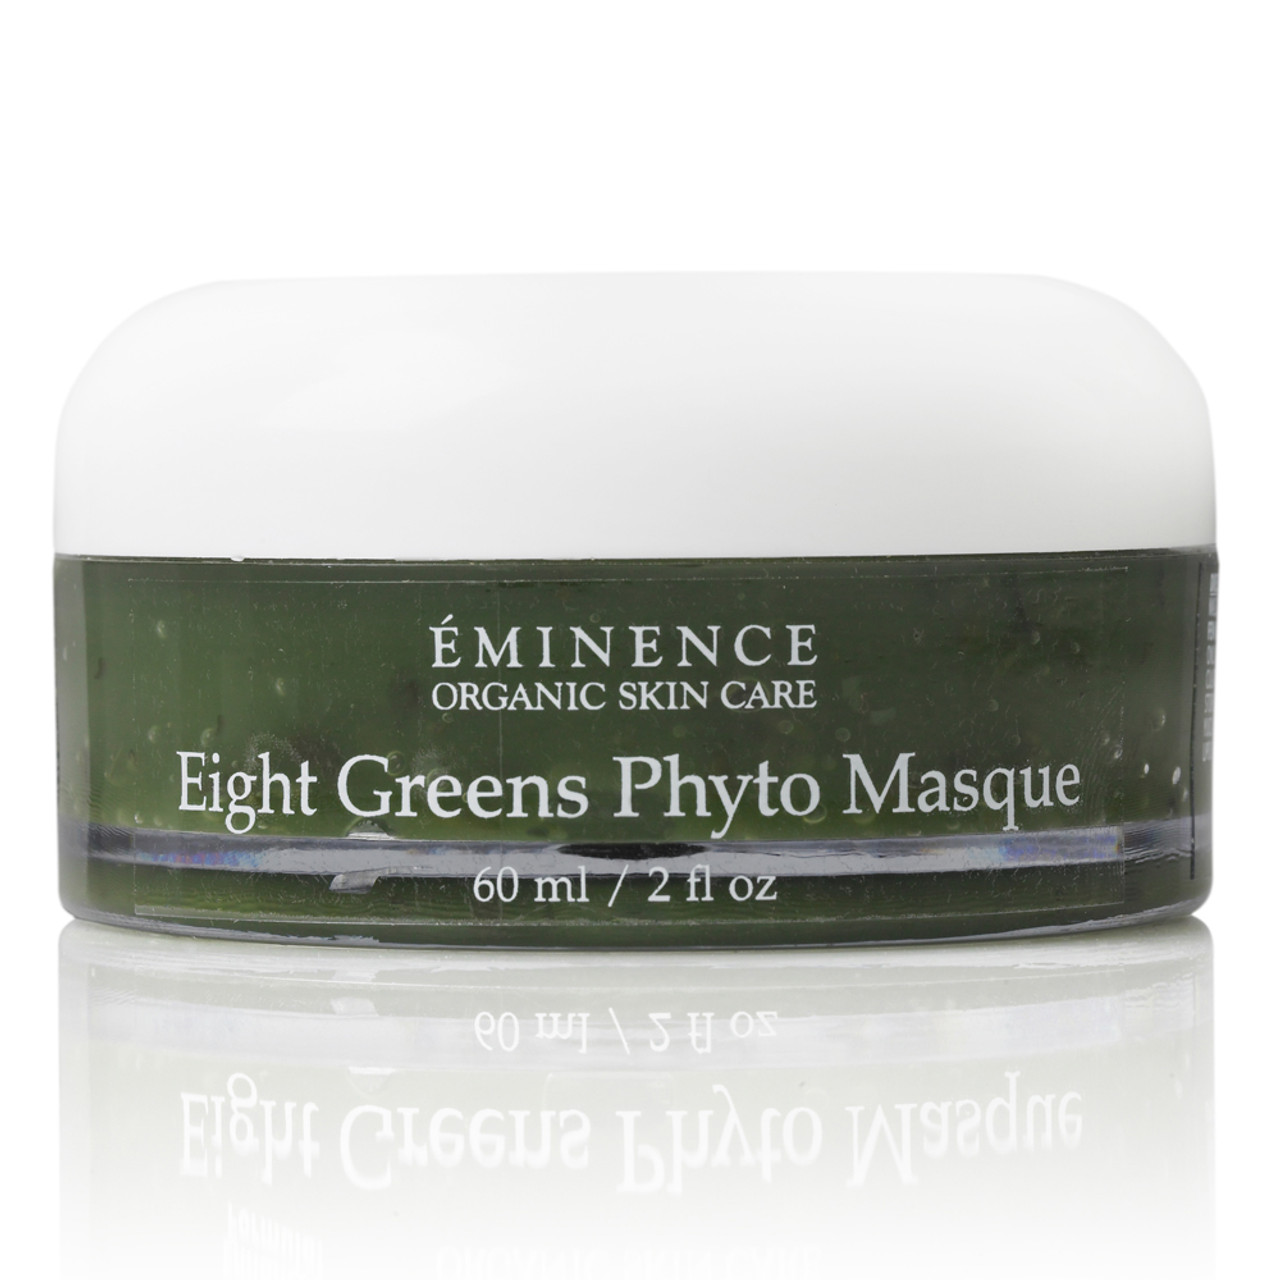 Eminence Eight Greens Phyto Masque - Not Hot